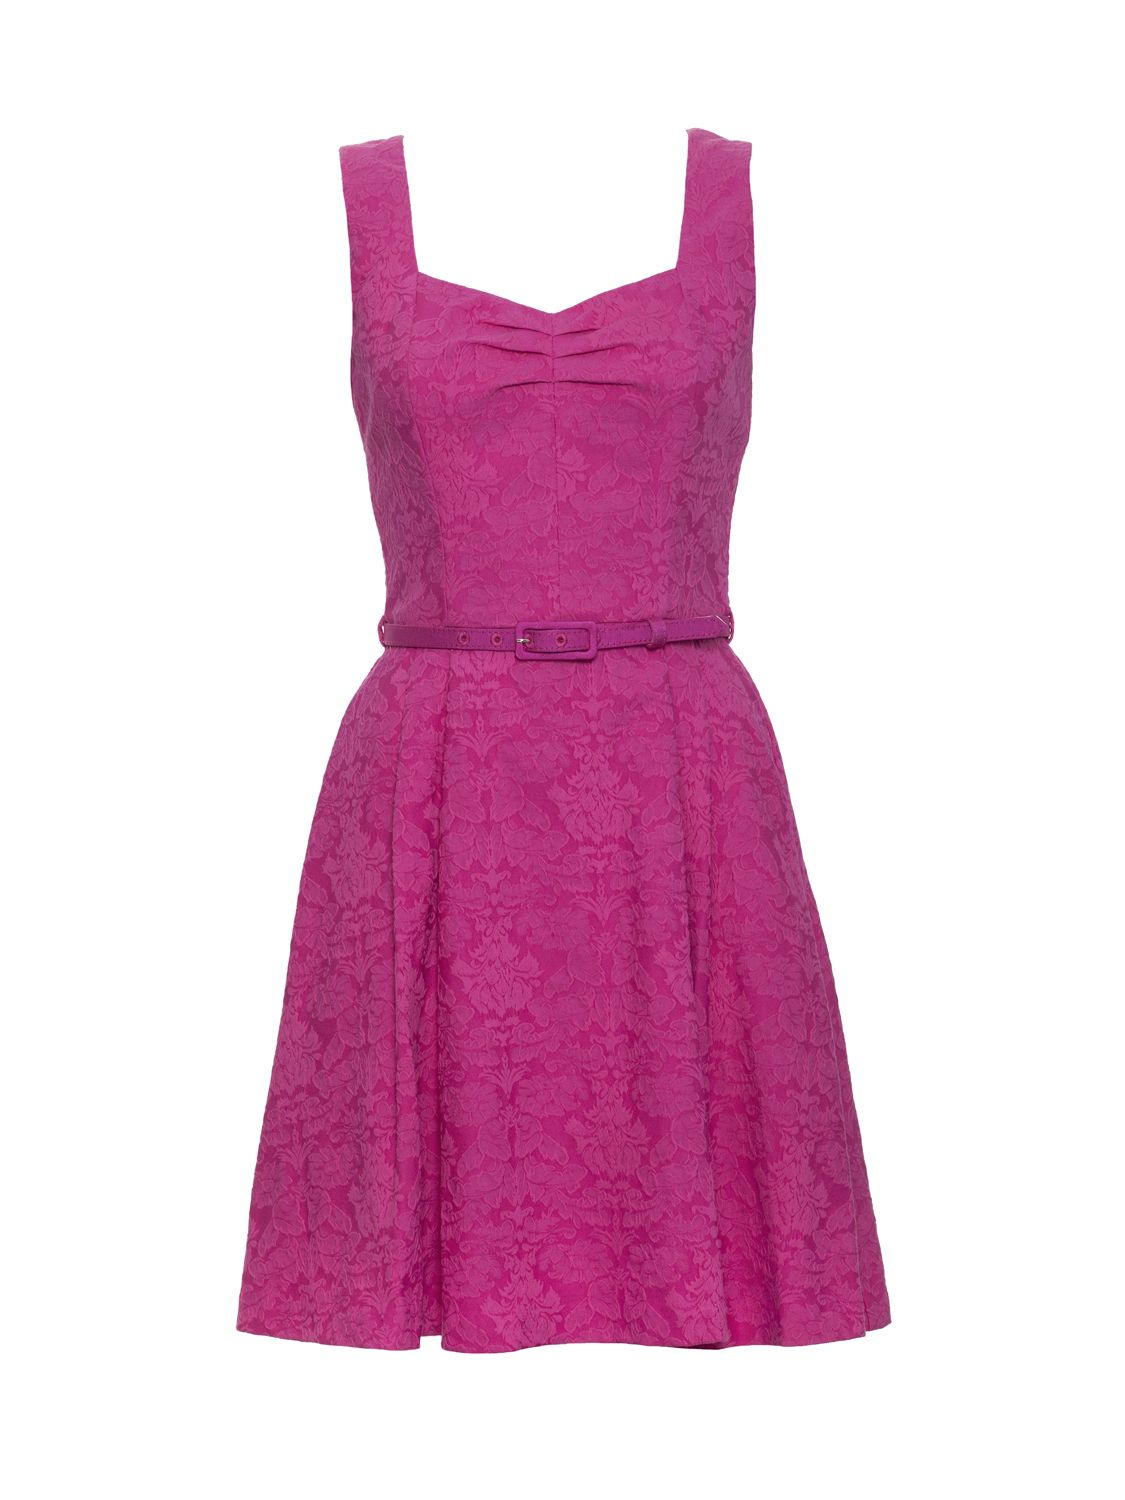 review dresses tops skirts knitwear pants jackets review dresses tops skirts knitwear pants jackets